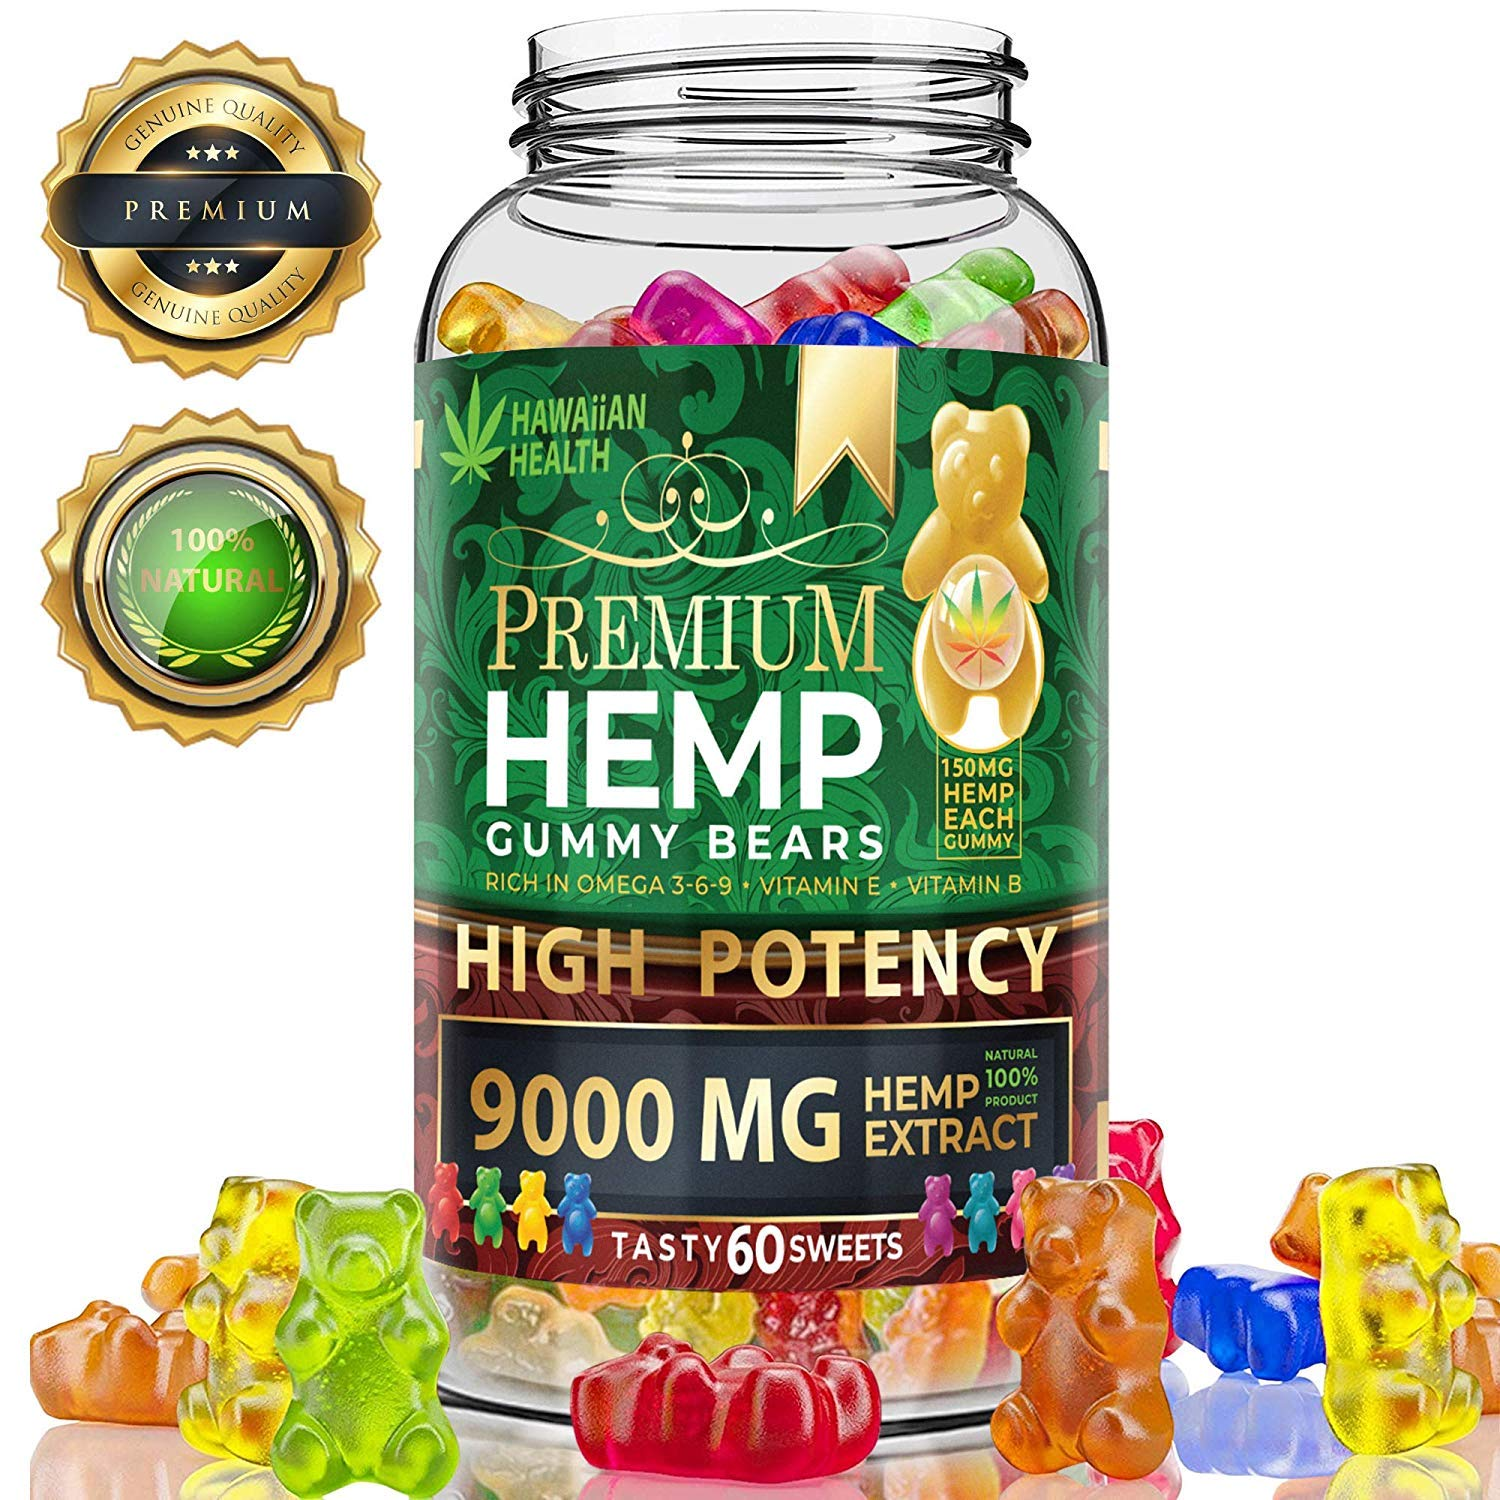 Hemp Gummies Premium 9000MG High Potency - 150 Per Fruity Gummy Bear with Hemp Oil | Natural Hemp Candy Supplements for Pain, Anxiety, Stress & Inflammation Relief | Promotes Sleep & Calm Mood